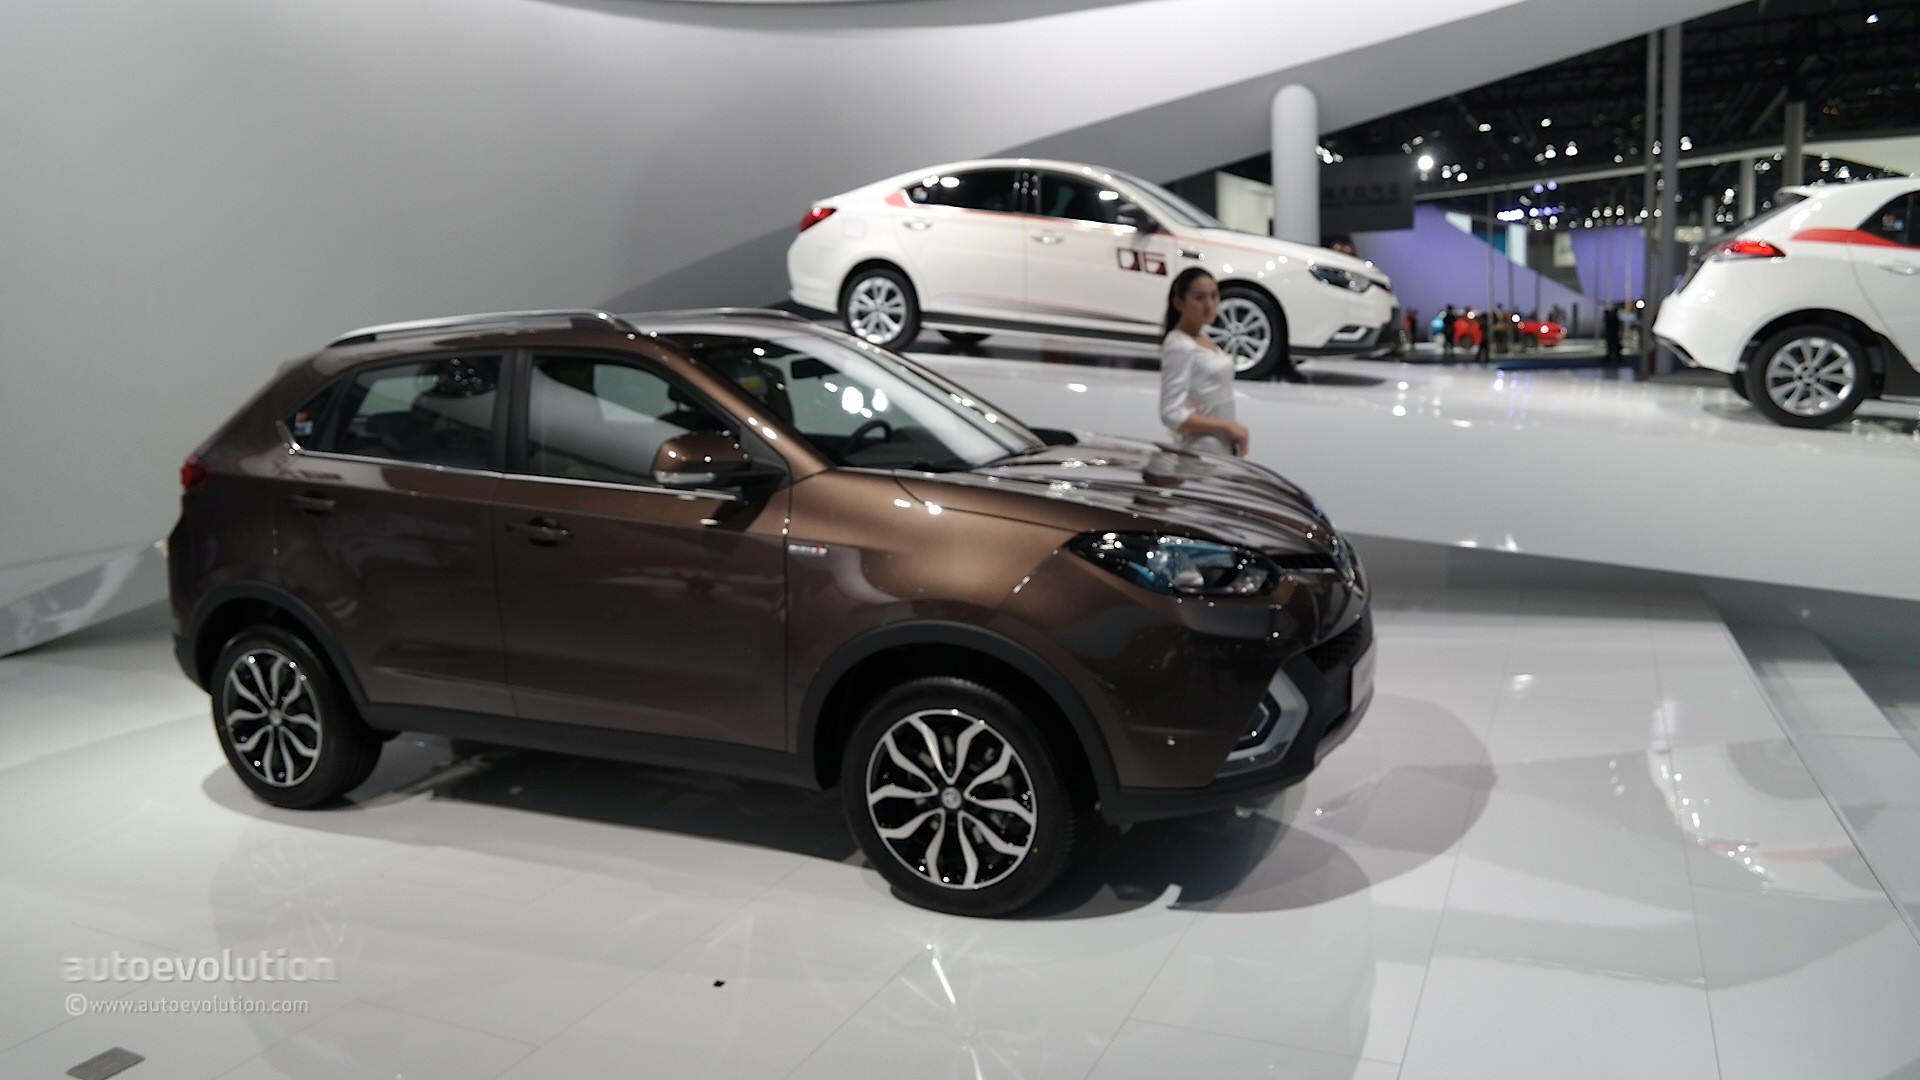 2016 MG GS SUV Priced from 14995 Undercuts the Nissan Qashqai by 3550  autoevolution